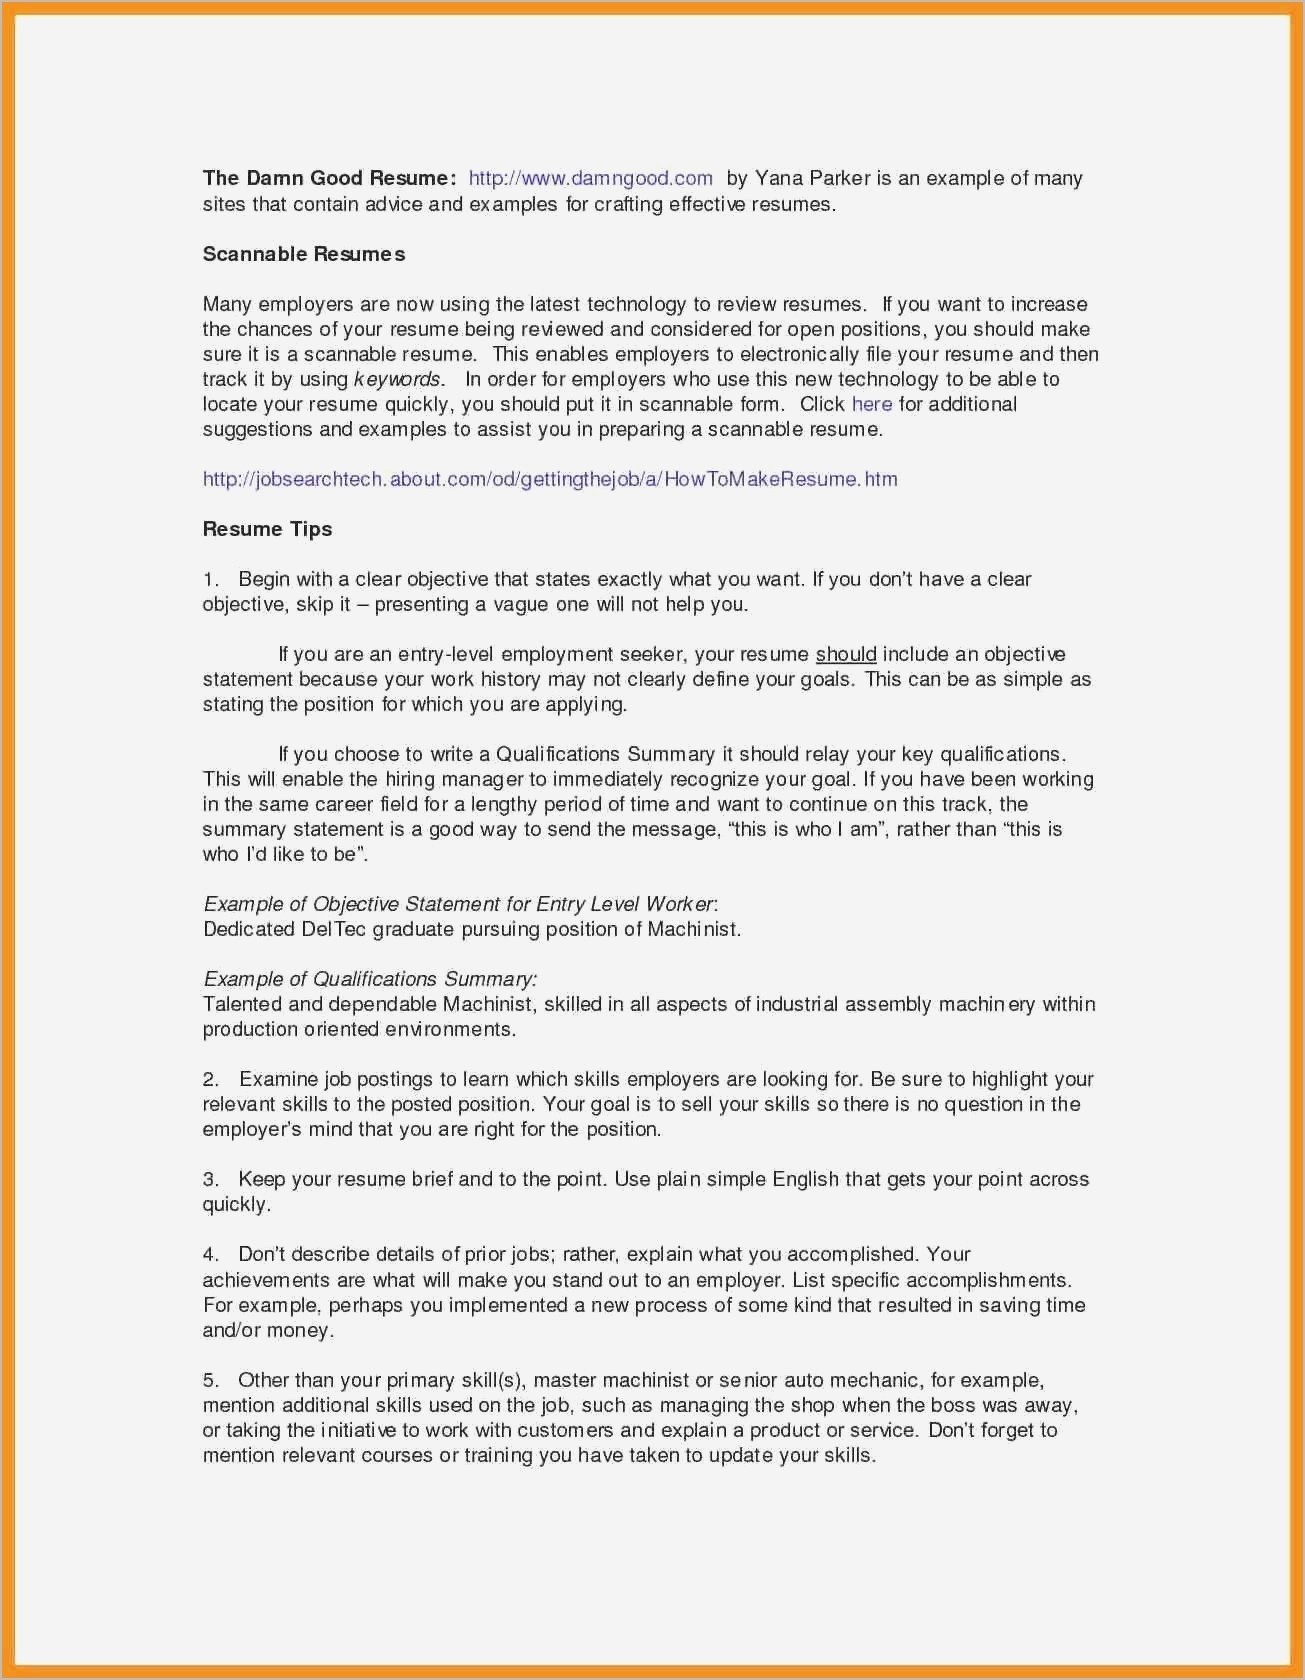 Call Center Job Description for Resume - Customer Service Call Center Resume Sample Best Call Center Job